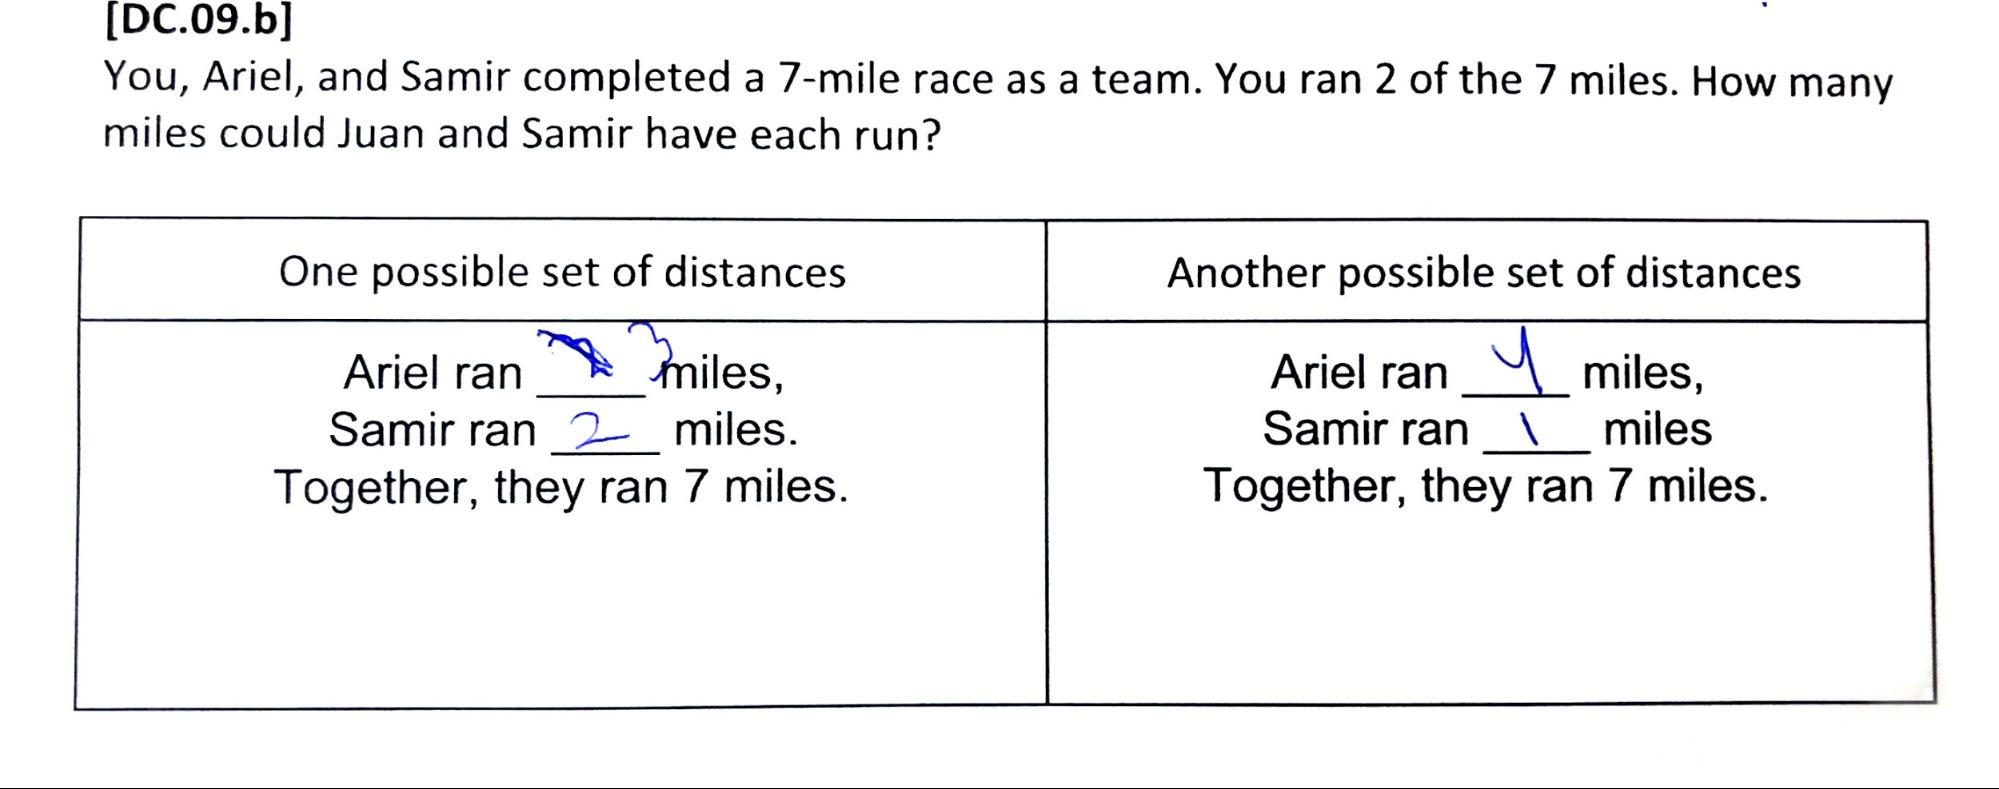 Decomposition assessment item asking students 'You, Ariel, and Samir completed a 7-mile race as a team. You ran 2 of the 7 miles. How many miles could Juan and Samir have each run?' followed by a graphic showing a 2-column table with the headings 'One possible set of distances' and 'Another possible set of distances', each with the same 3 statements below them: Ariel ran ___ miles, Samir ran ___ miles. Together, they ran 7 miles. The first column has a number scratched out and the number 3 written in for Ariel's distance and 2 written in for Samir's distance. The second column has 4 written in for Ariel's distance and 1 written in for Samir's distance.